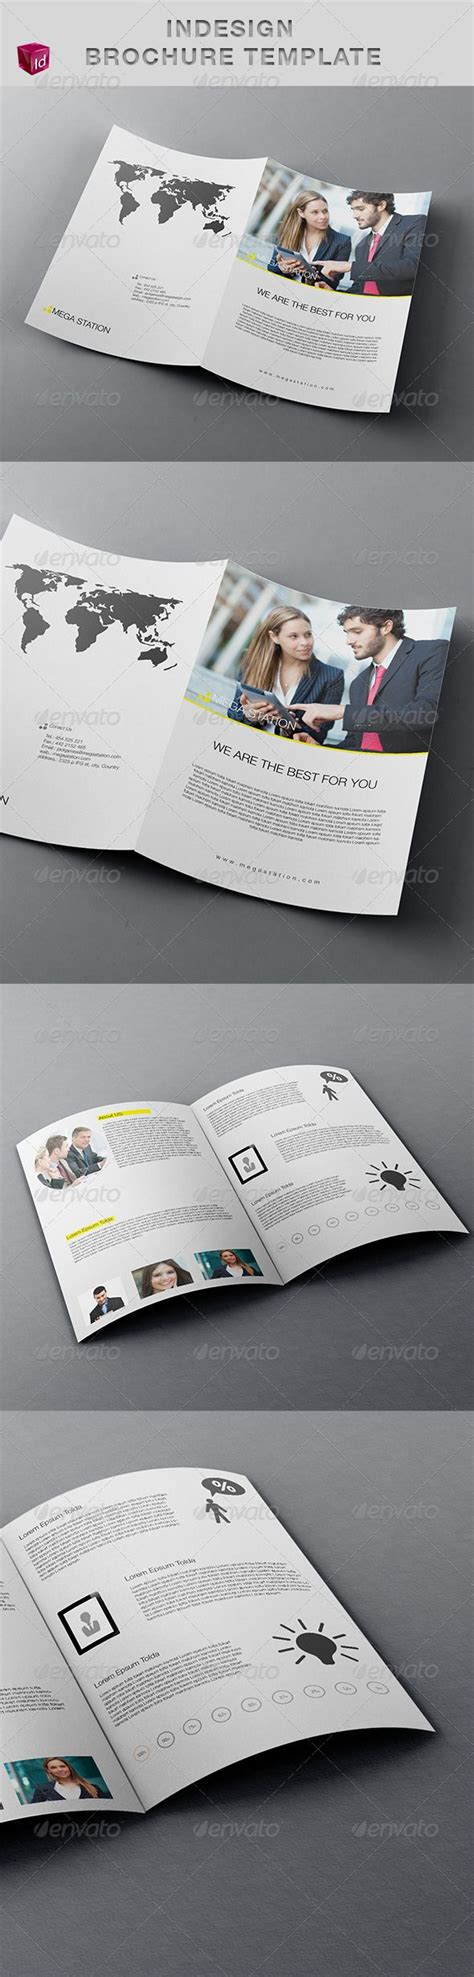 Adobe Indesign Cs5 5 Brochure Sakshithinda Top 25 Ideas About Print Templates On Fonts